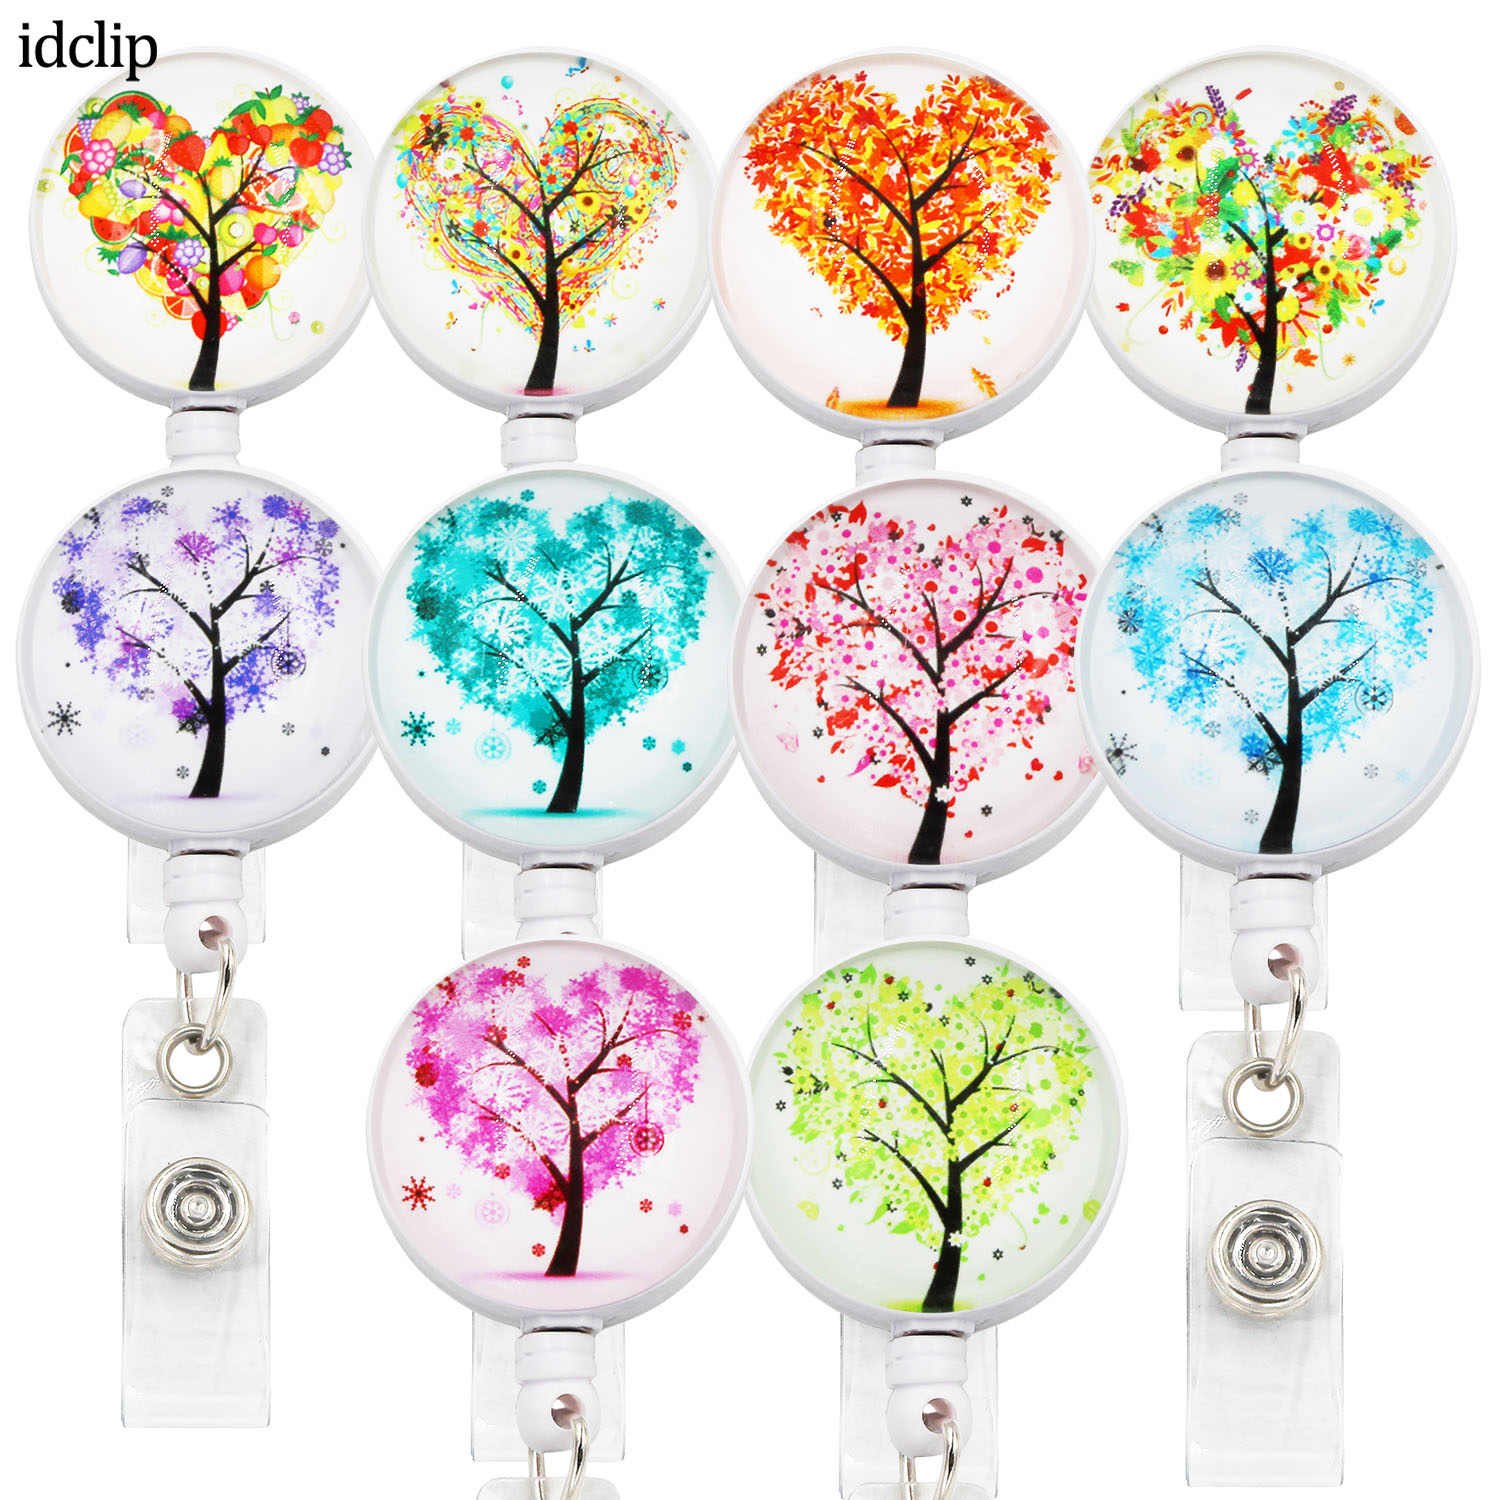 Idclip Colors Tree ID Retractable Badge Holder With 360 Alligator Clip Life  Retractable Cord ID Badge